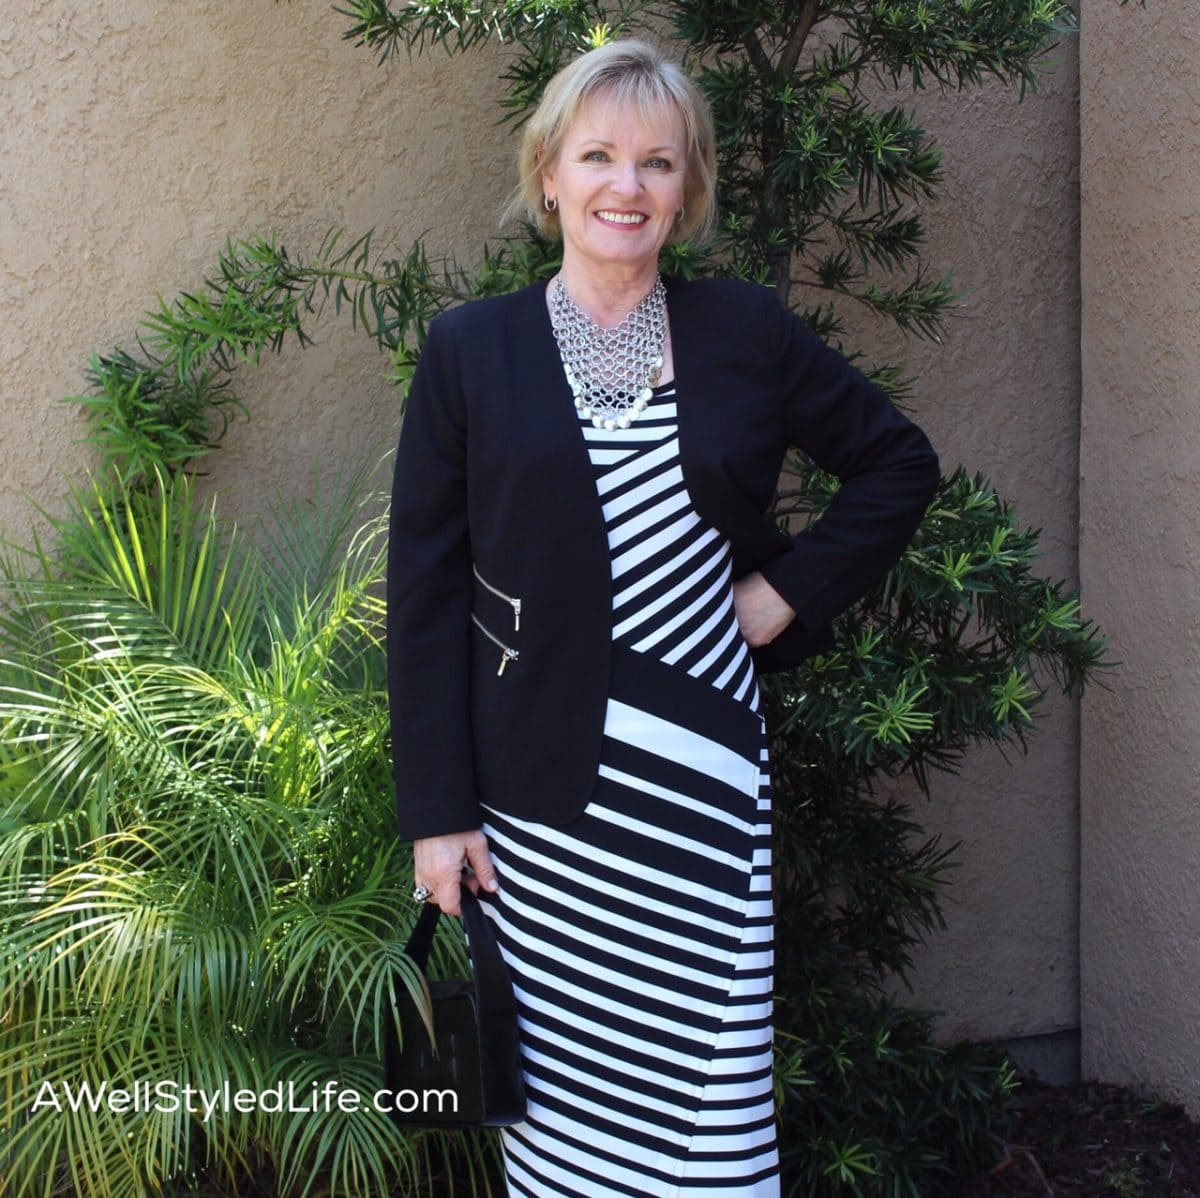 Cruise Wear For Women Over 50 What To Pack A Well Styled Life